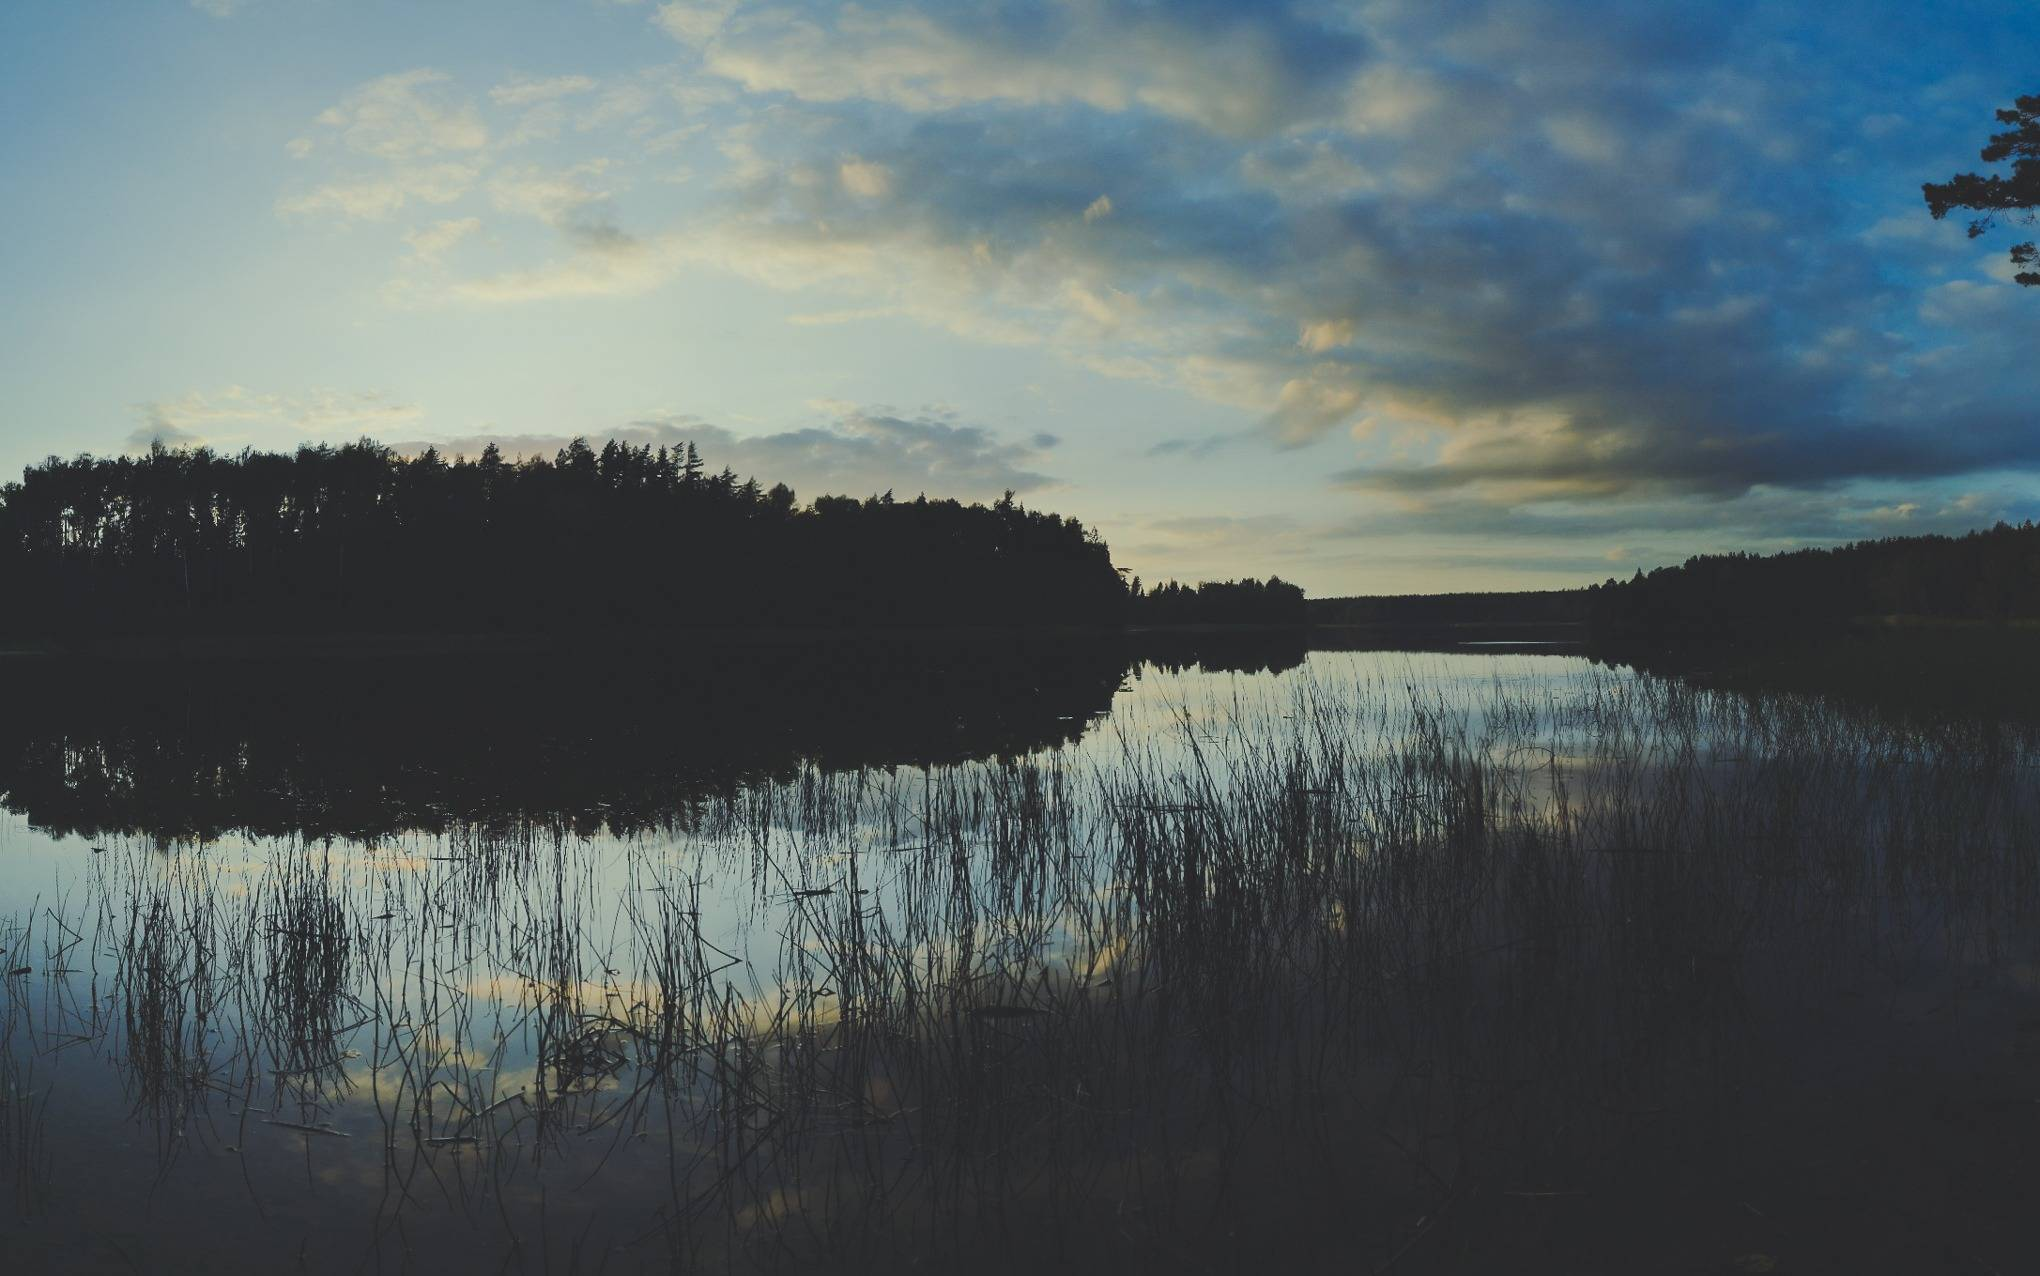 Black Lakajai Lake during an evening in Labanoras Regional Park, Lithuania. Photo Alis Monte [CC BY-SA 4.0], via Connecting the Dots